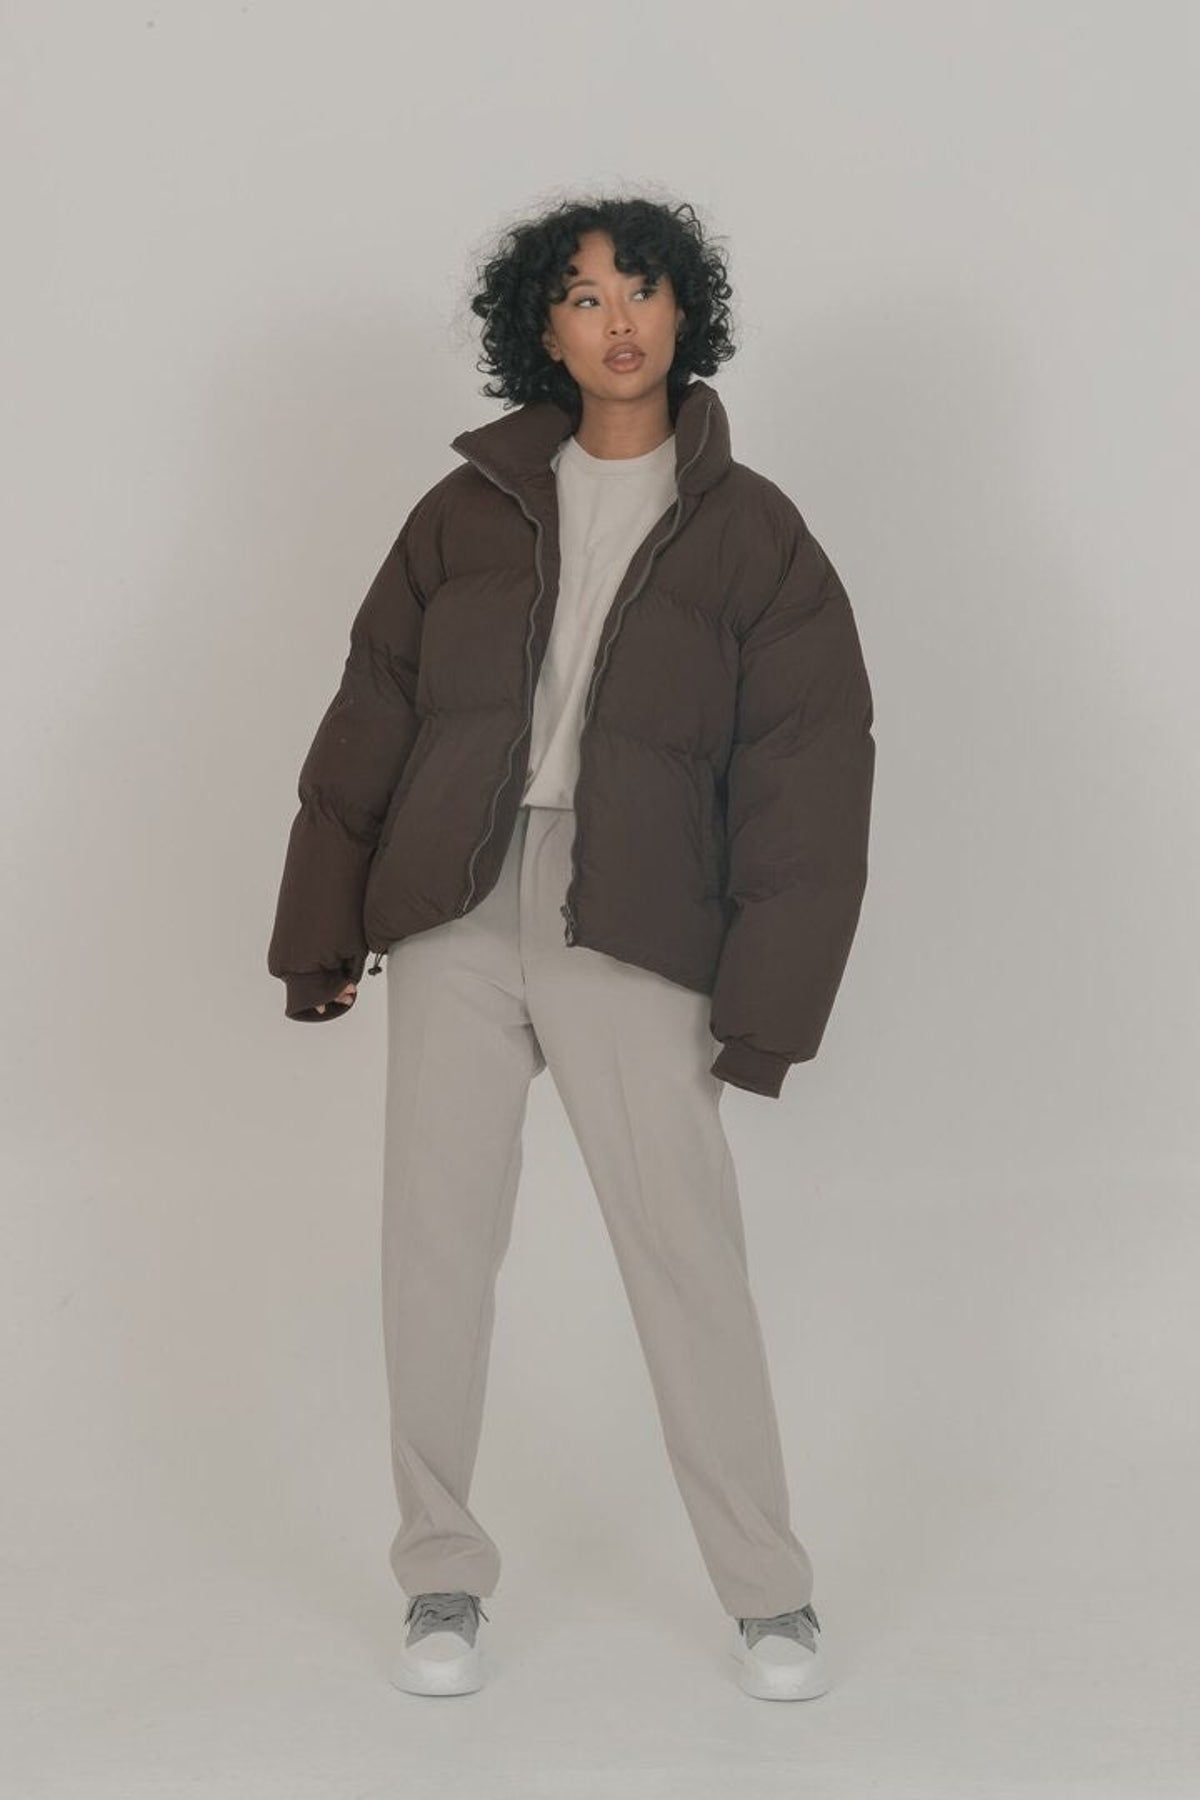 Cold Laundry Inspired Puffer Jacket Winter Jacket Outfits Puffer Jacket Outfit Puffer Jacket Outfit Aesthetic [ 1800 x 1200 Pixel ]